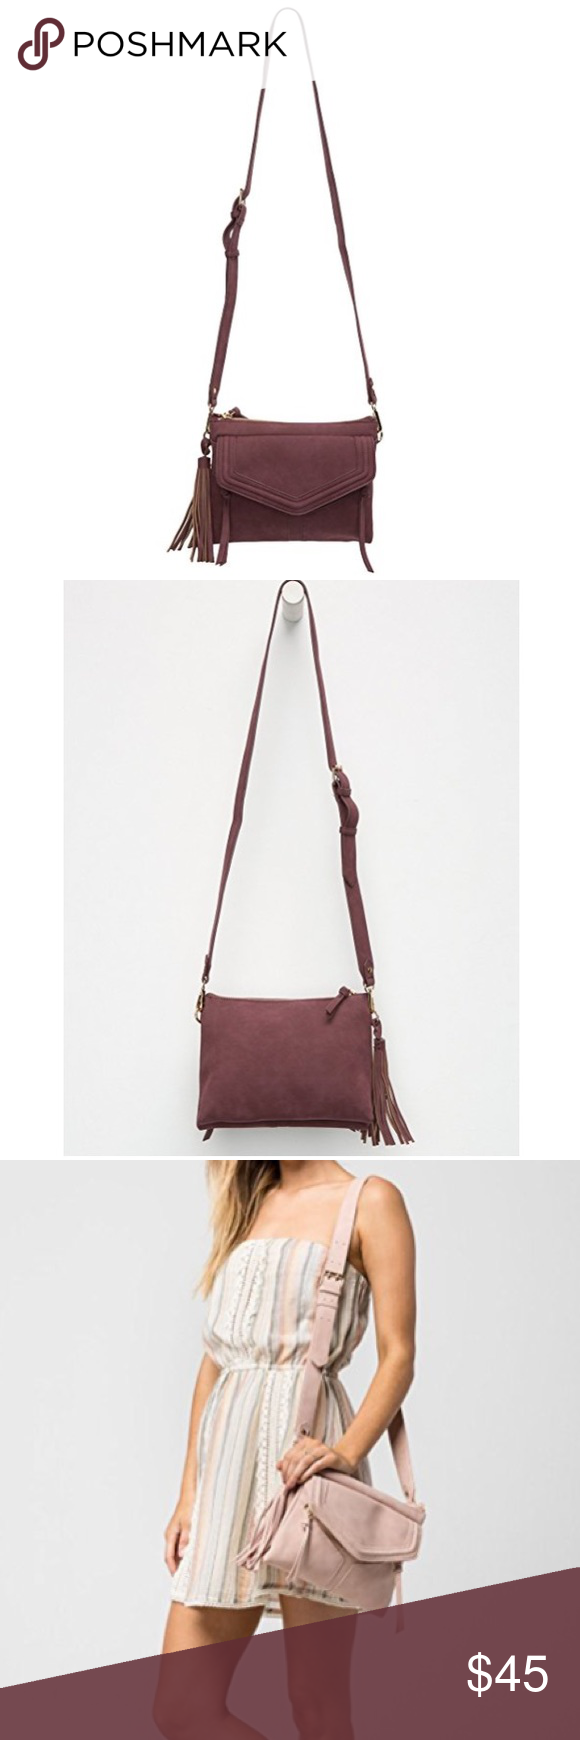 3d16db0fe346 Free People Leanna in wine Brand new with tags free People brand Violet Ray Leanna  crossbody bag in burgundy wine color. Violet Ray is a brand that is sold ...